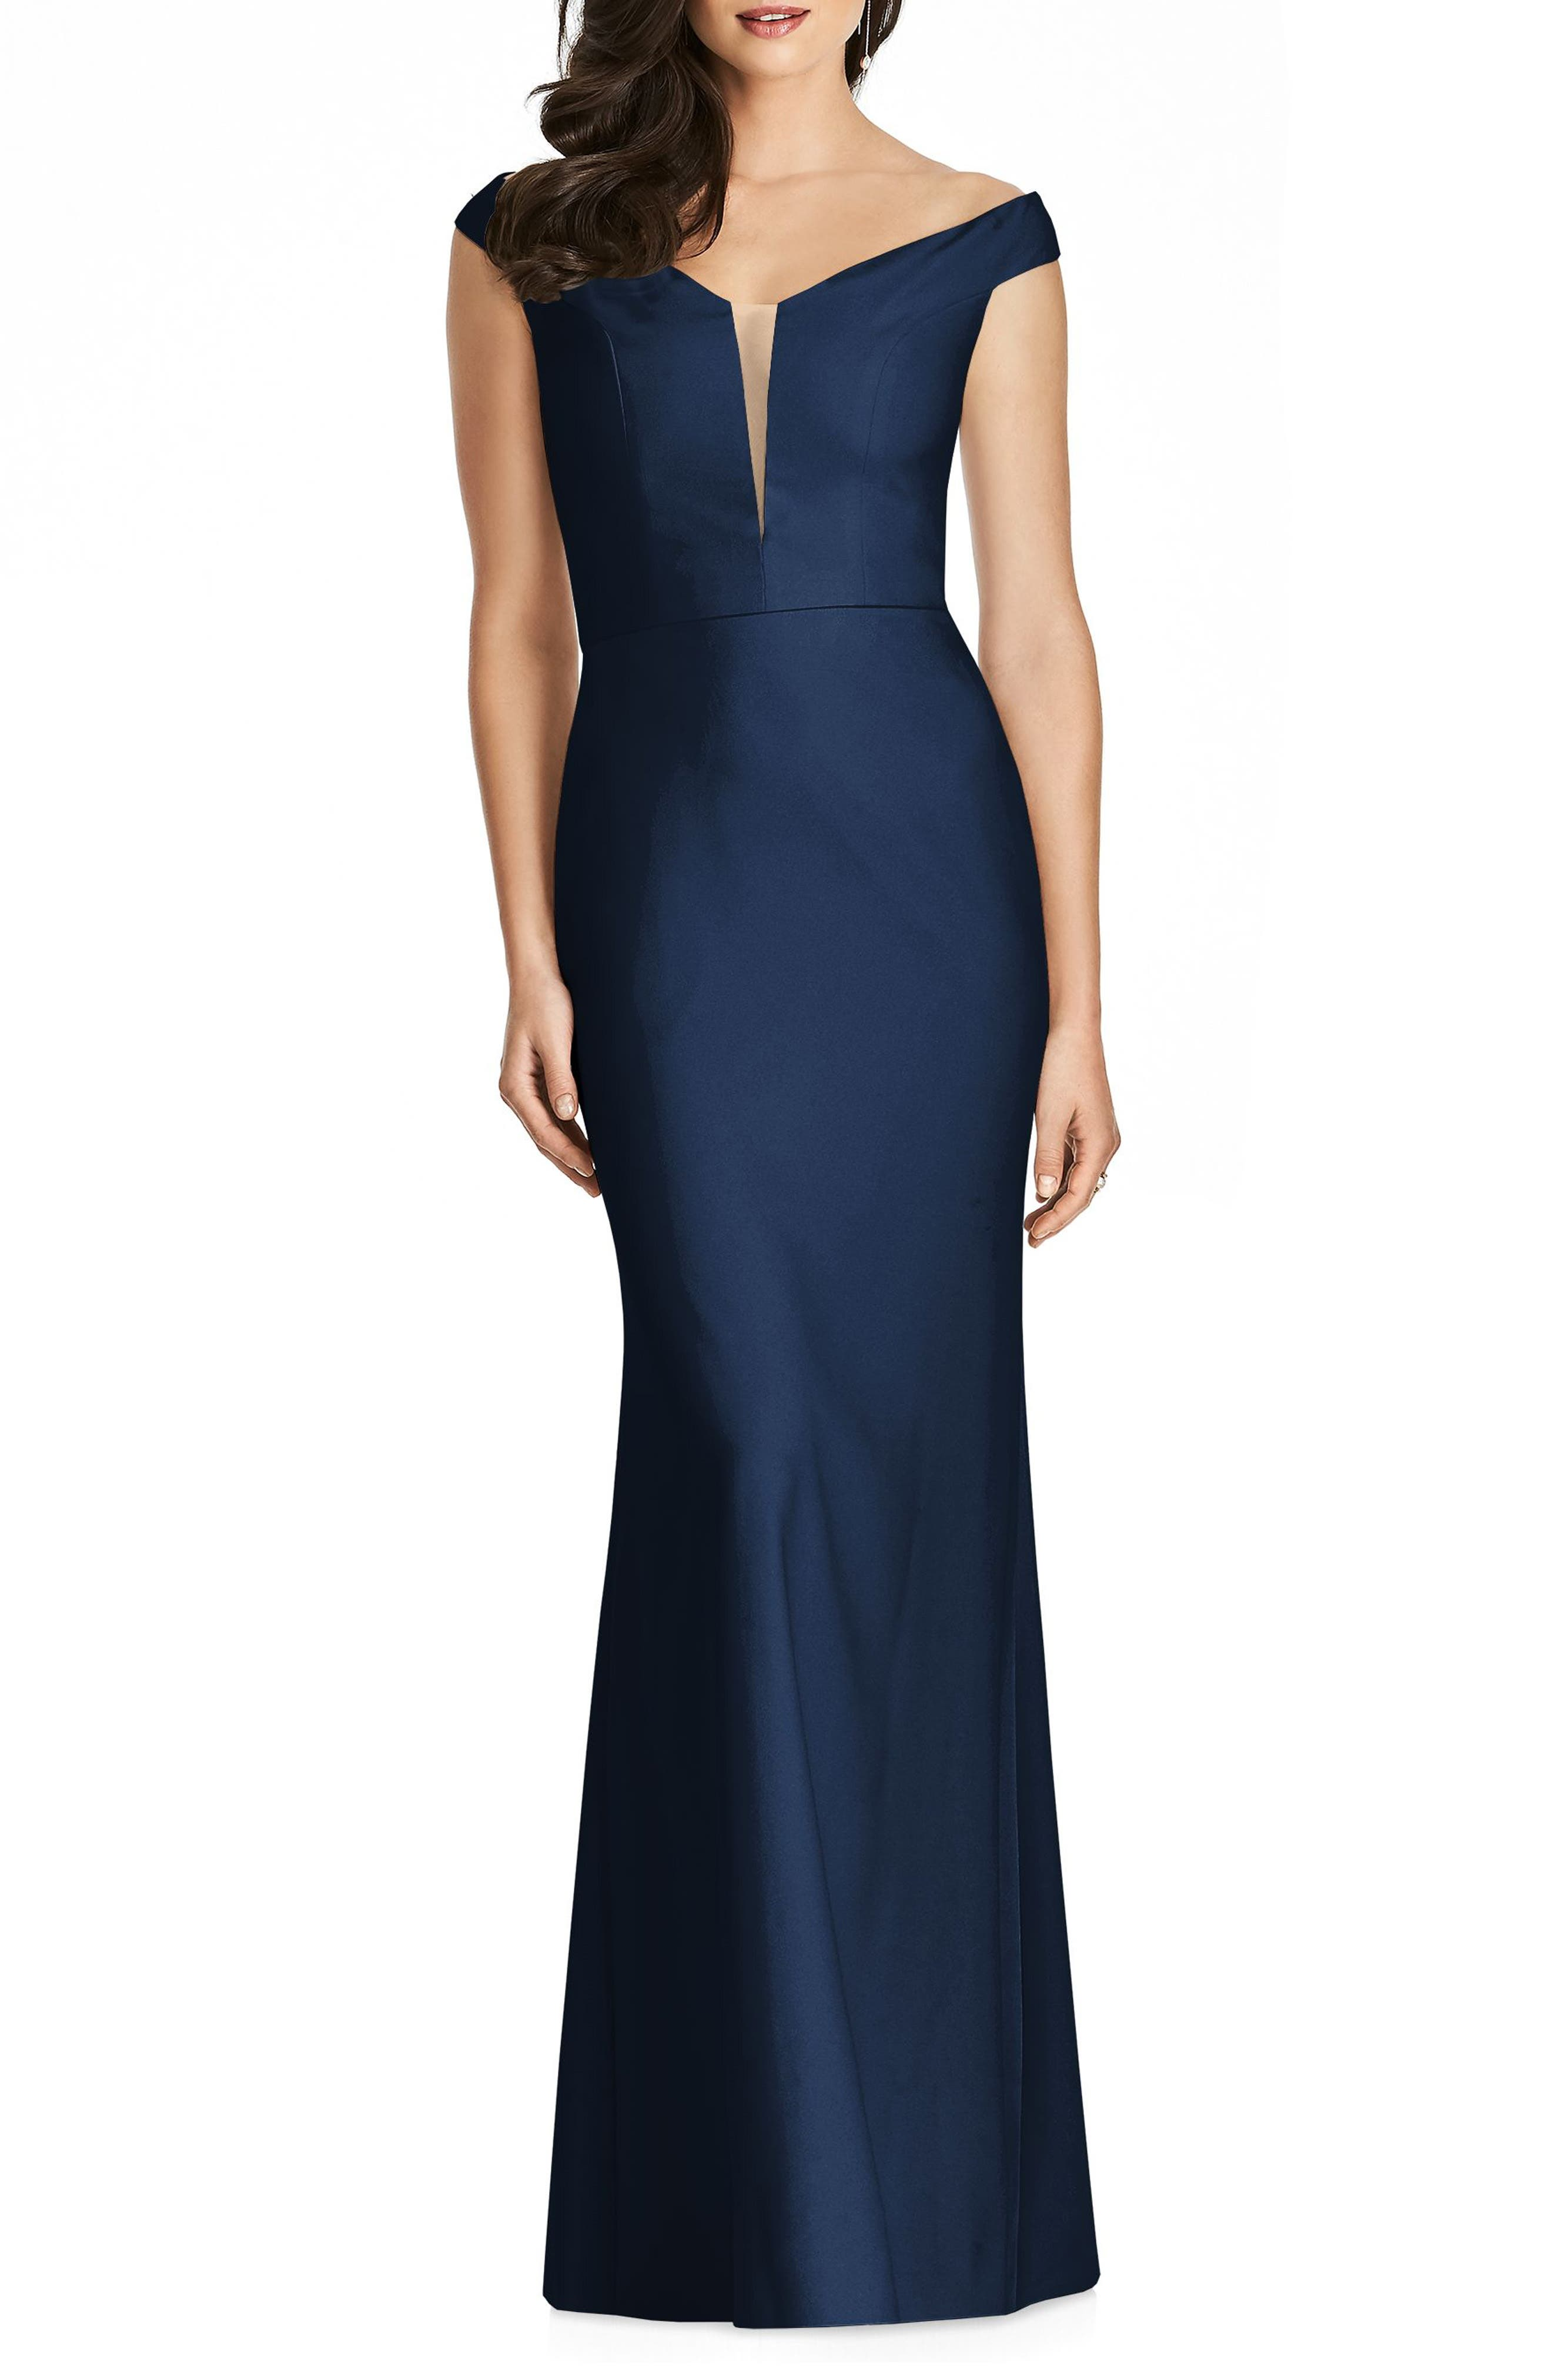 DESSY COLLECTION, Off the Shoulder Crepe Gown, Alternate thumbnail 3, color, MIDNIGHT